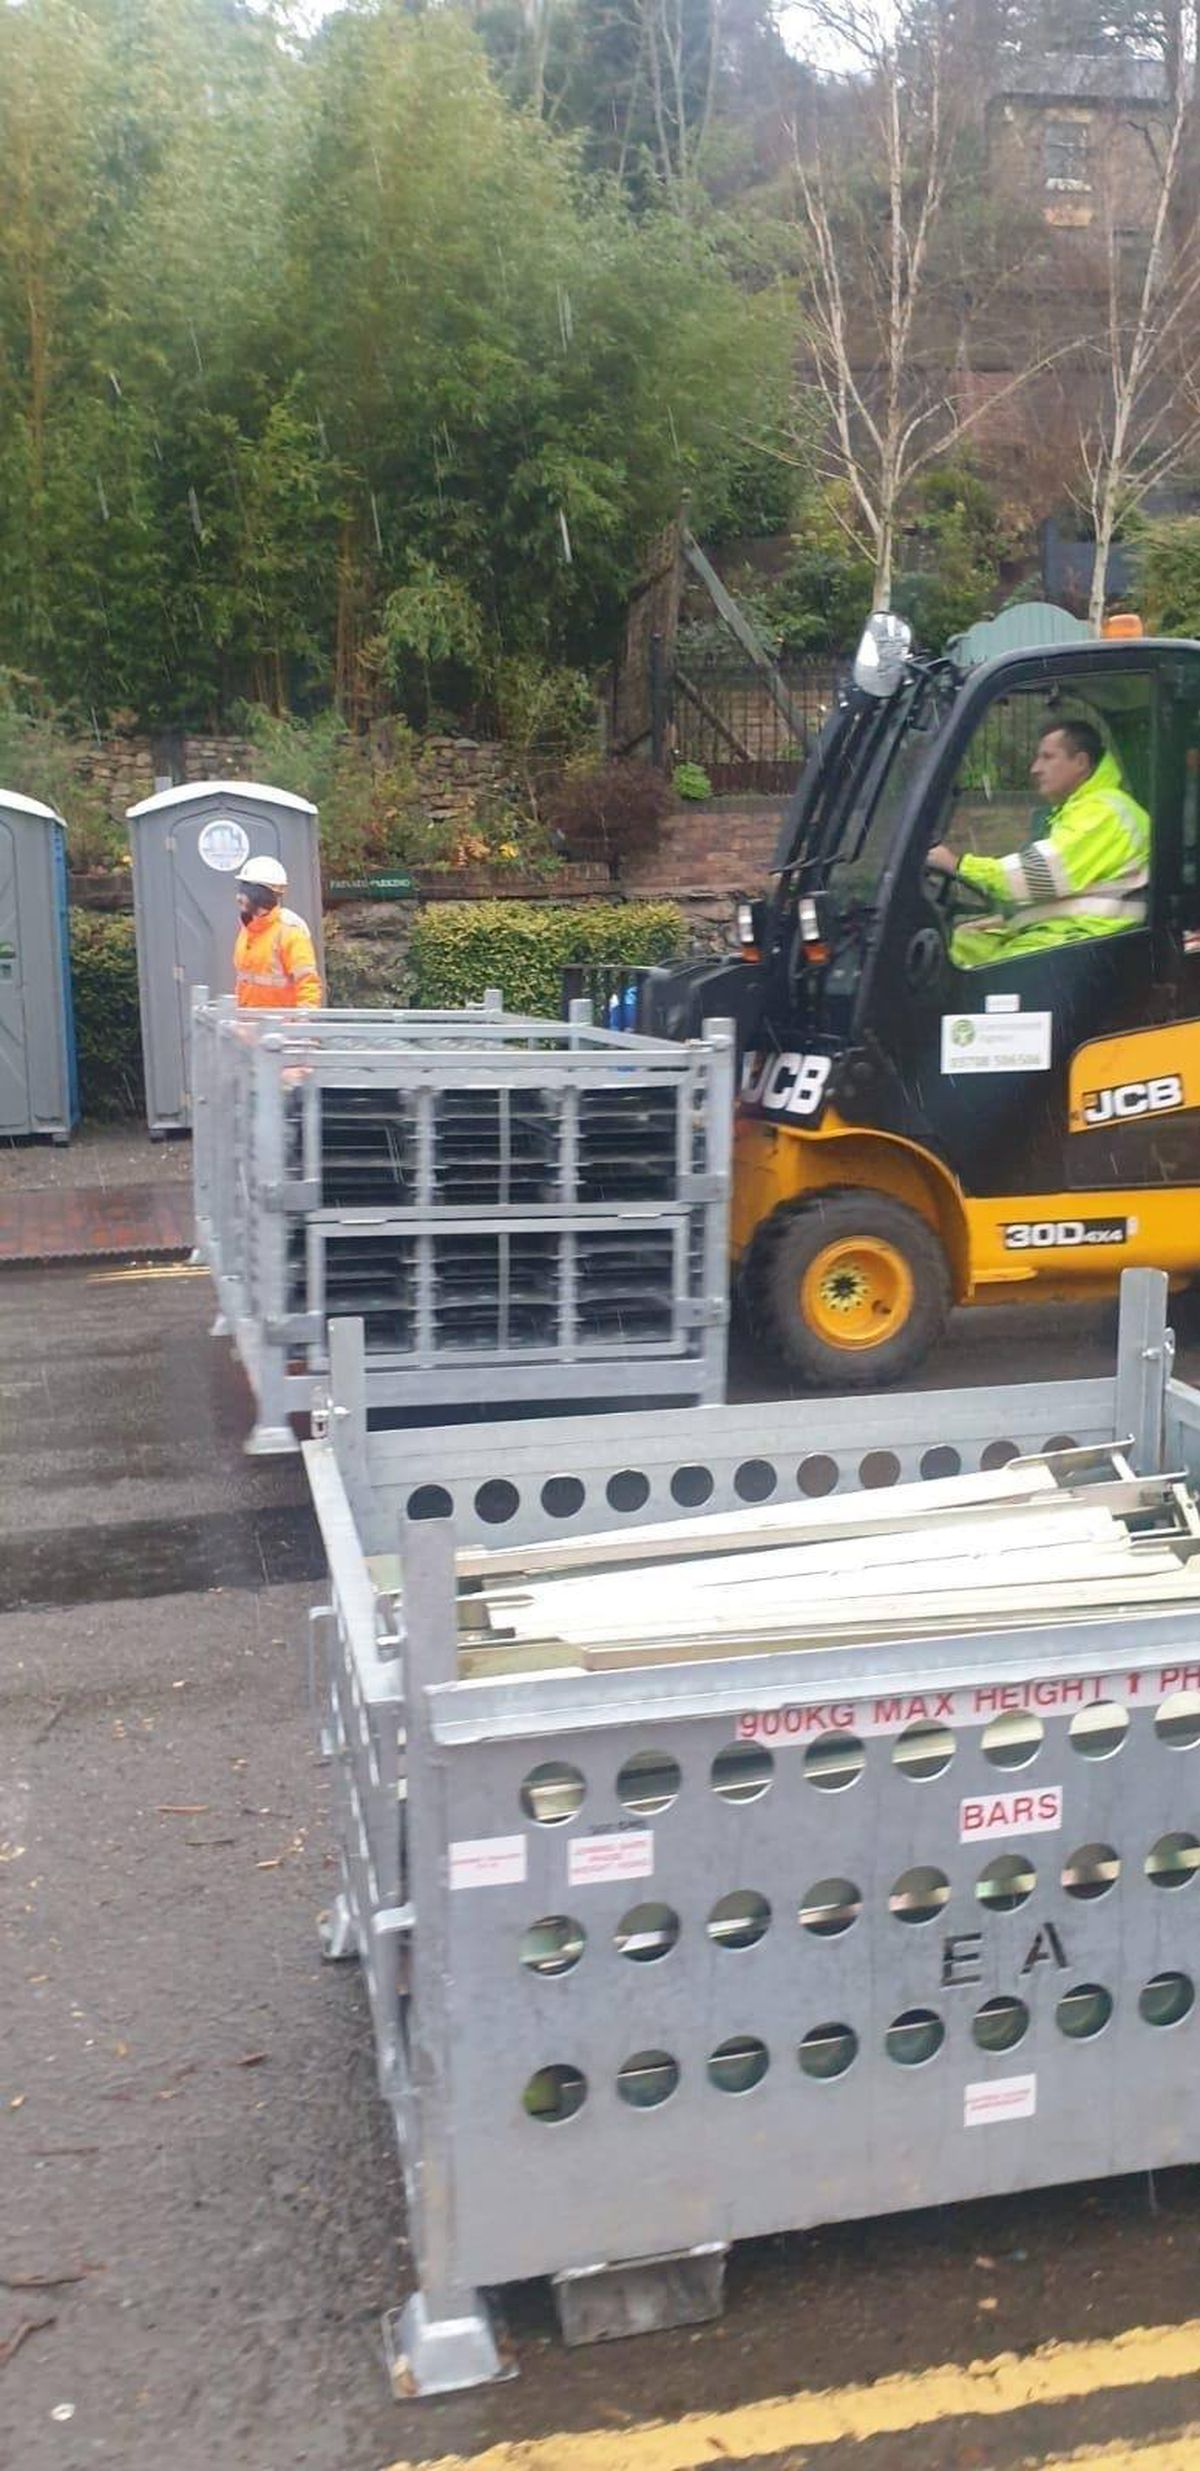 The flood barriers have been removed from Ironbridge